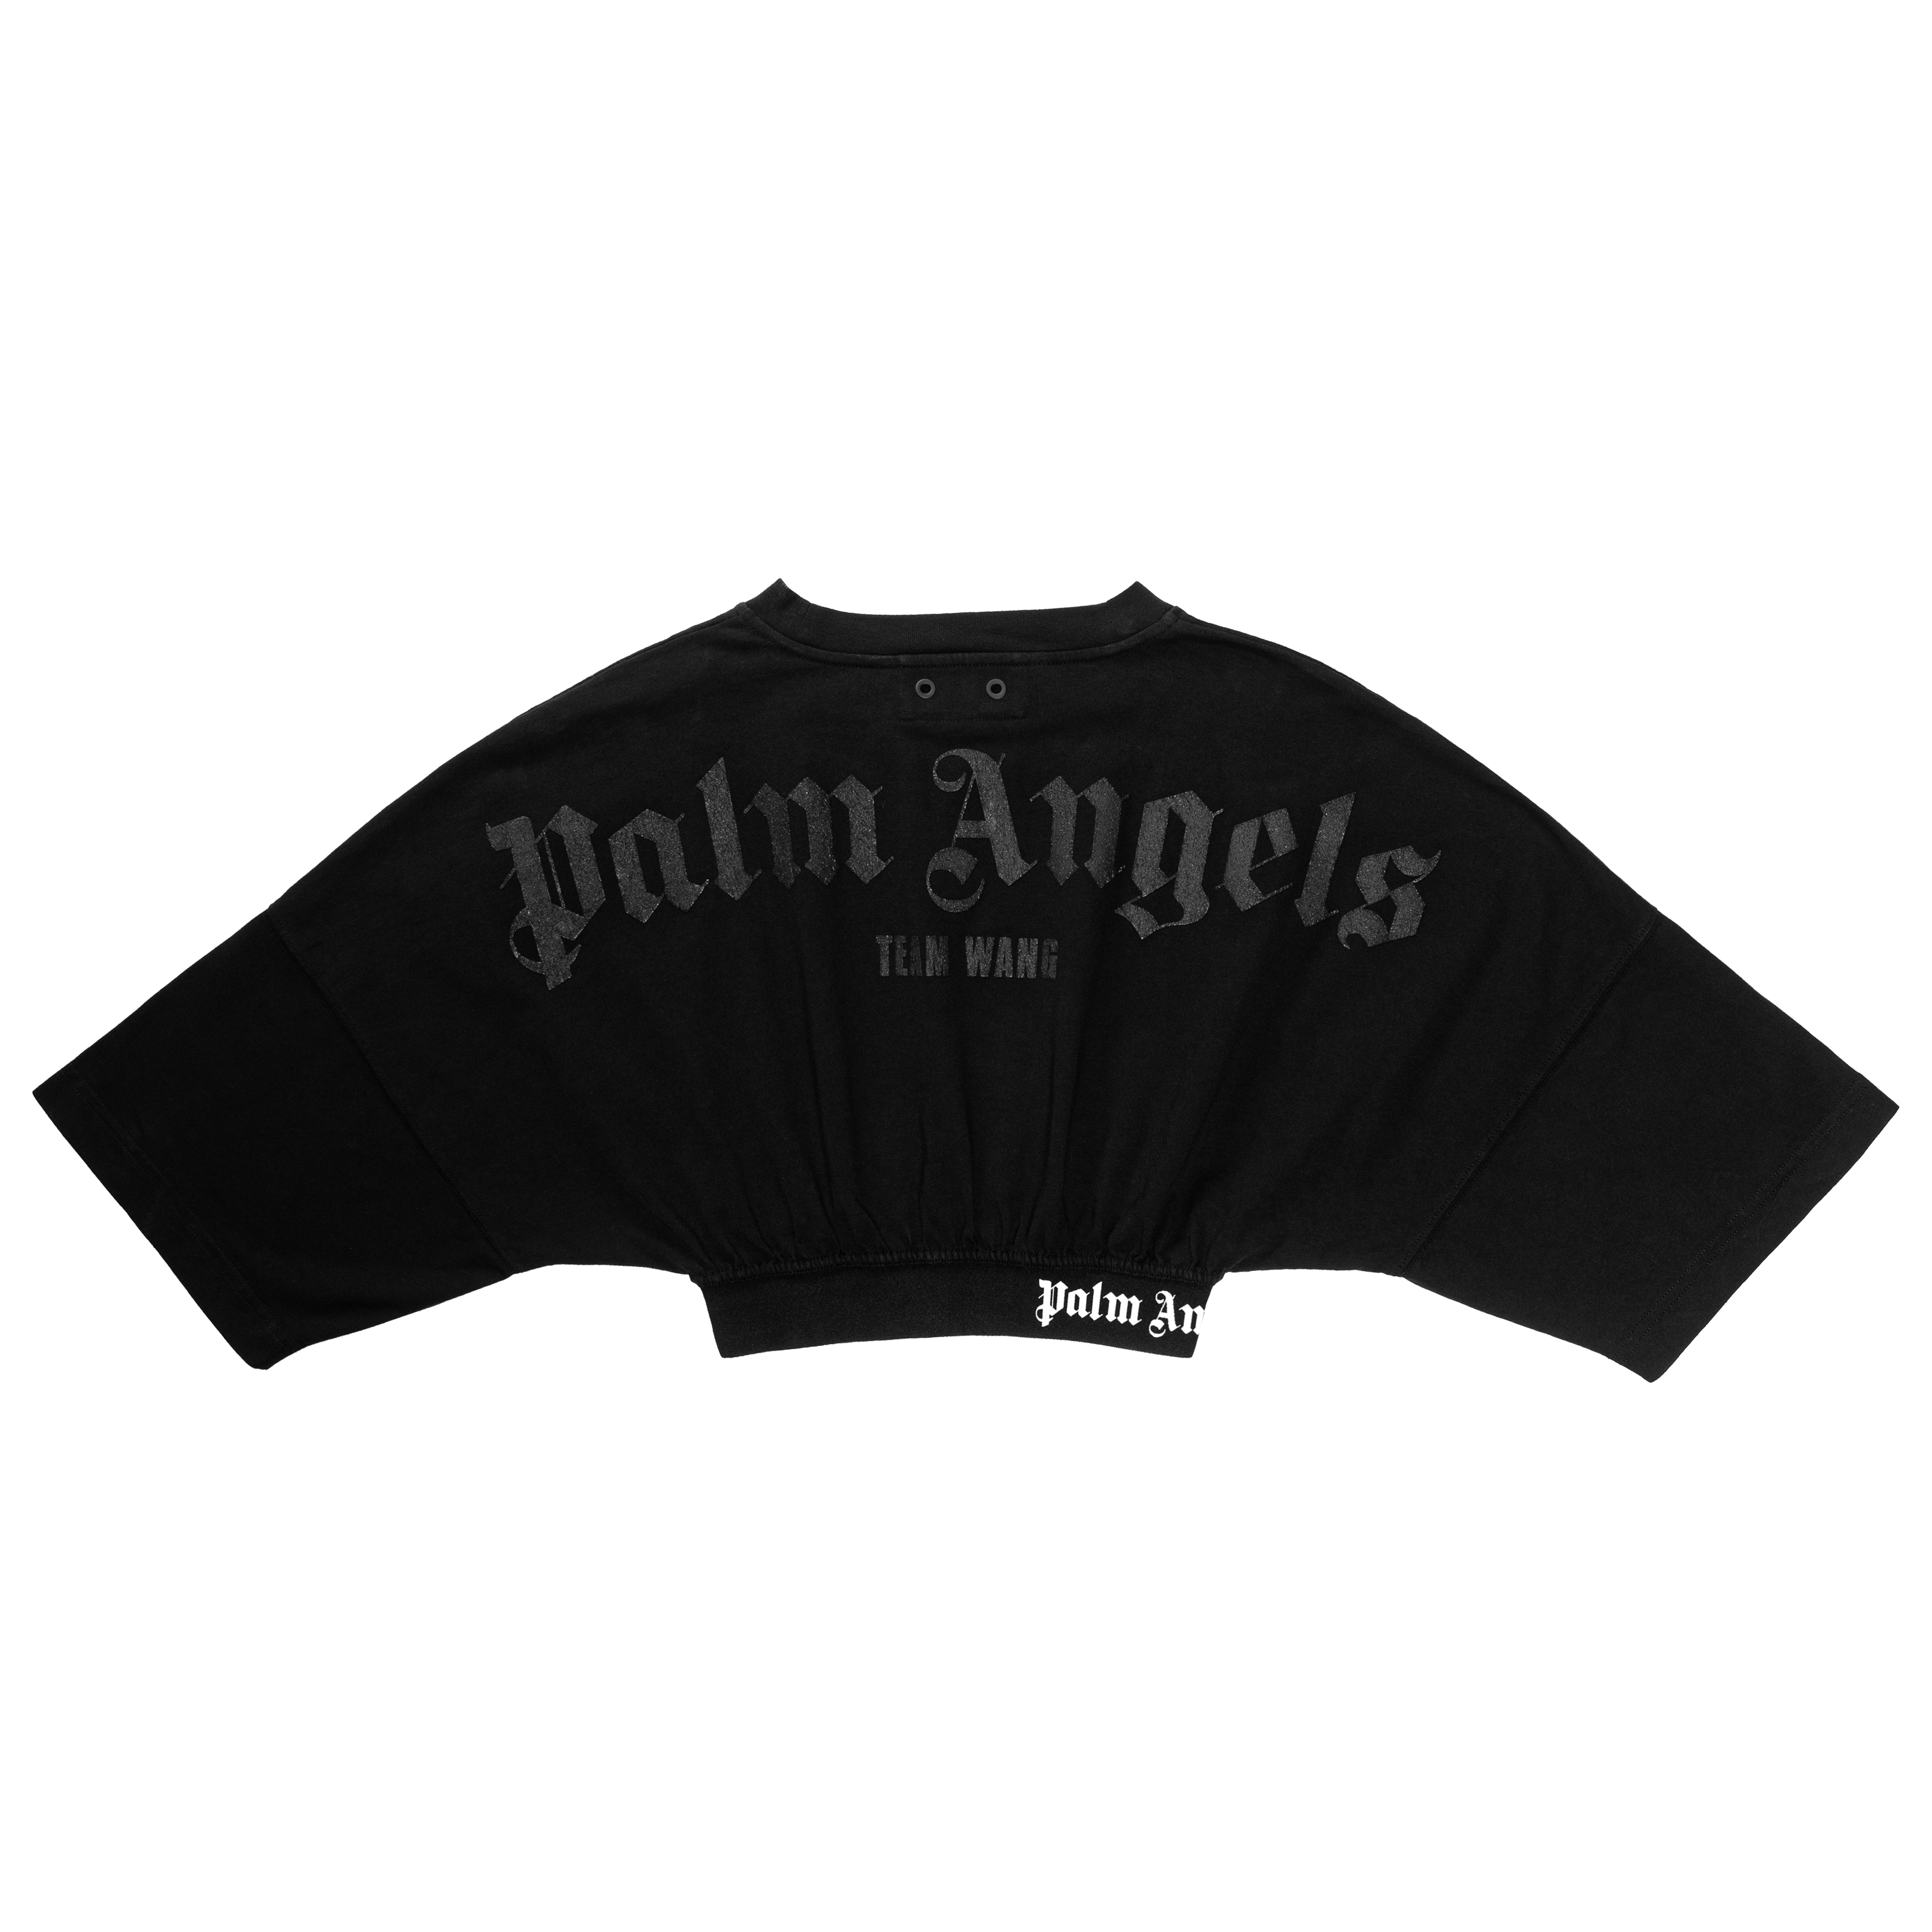 A cropped tee from the Team Wang x Palm Angels line.